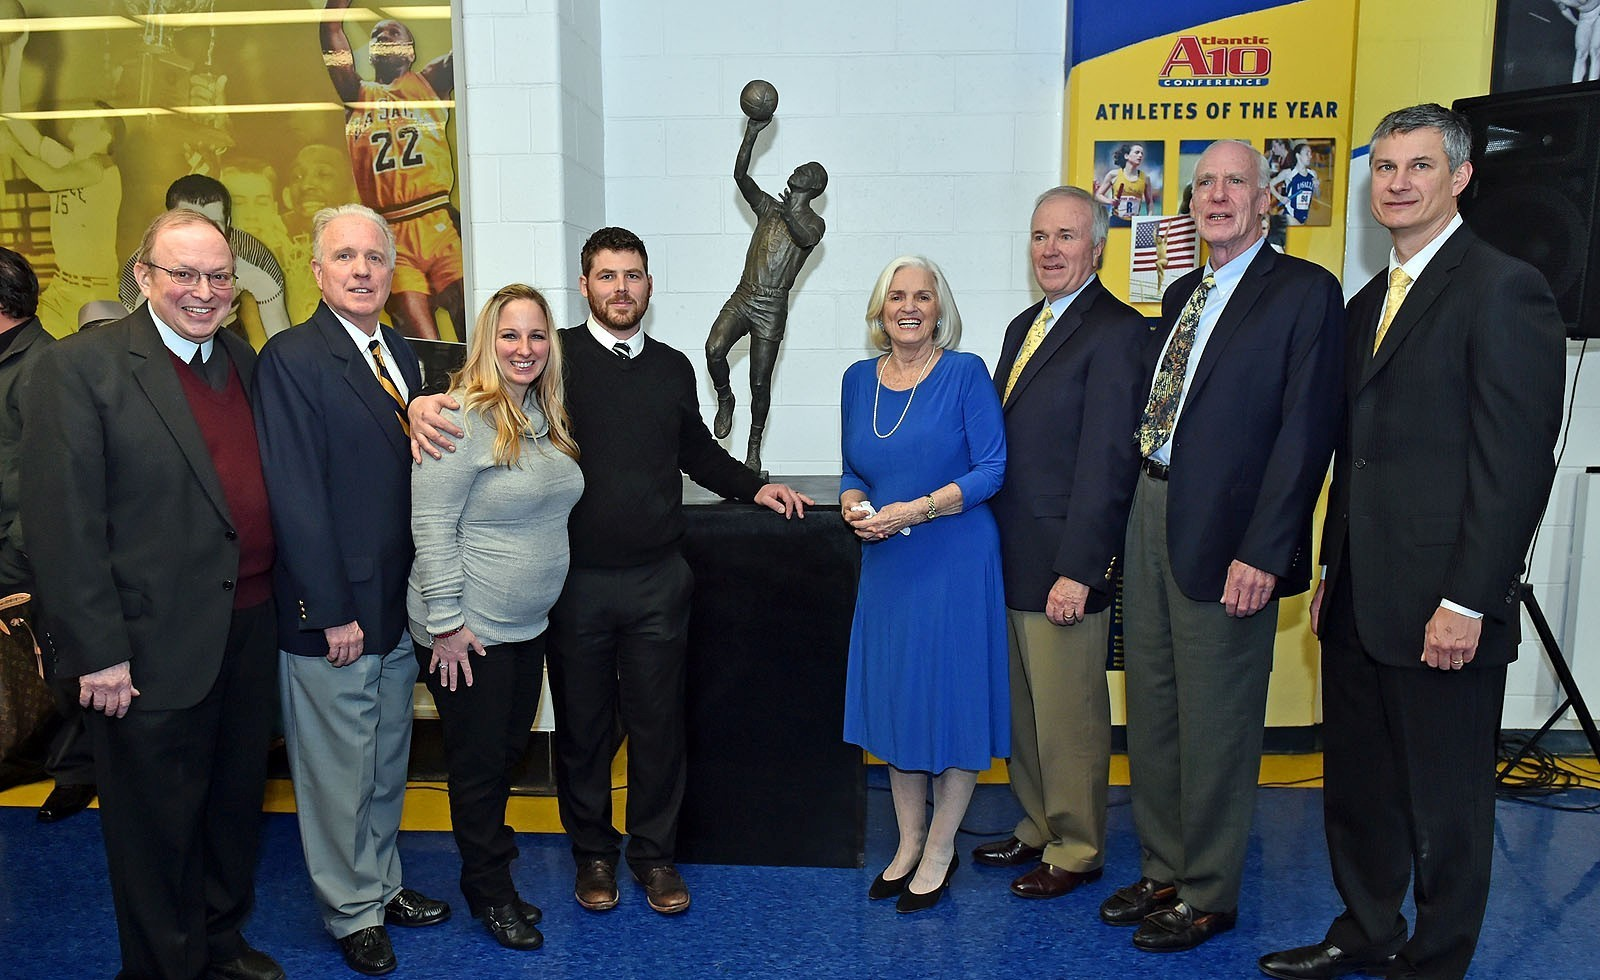 La Salle Unveils Sculpture Tom Gola The ficial Athletics